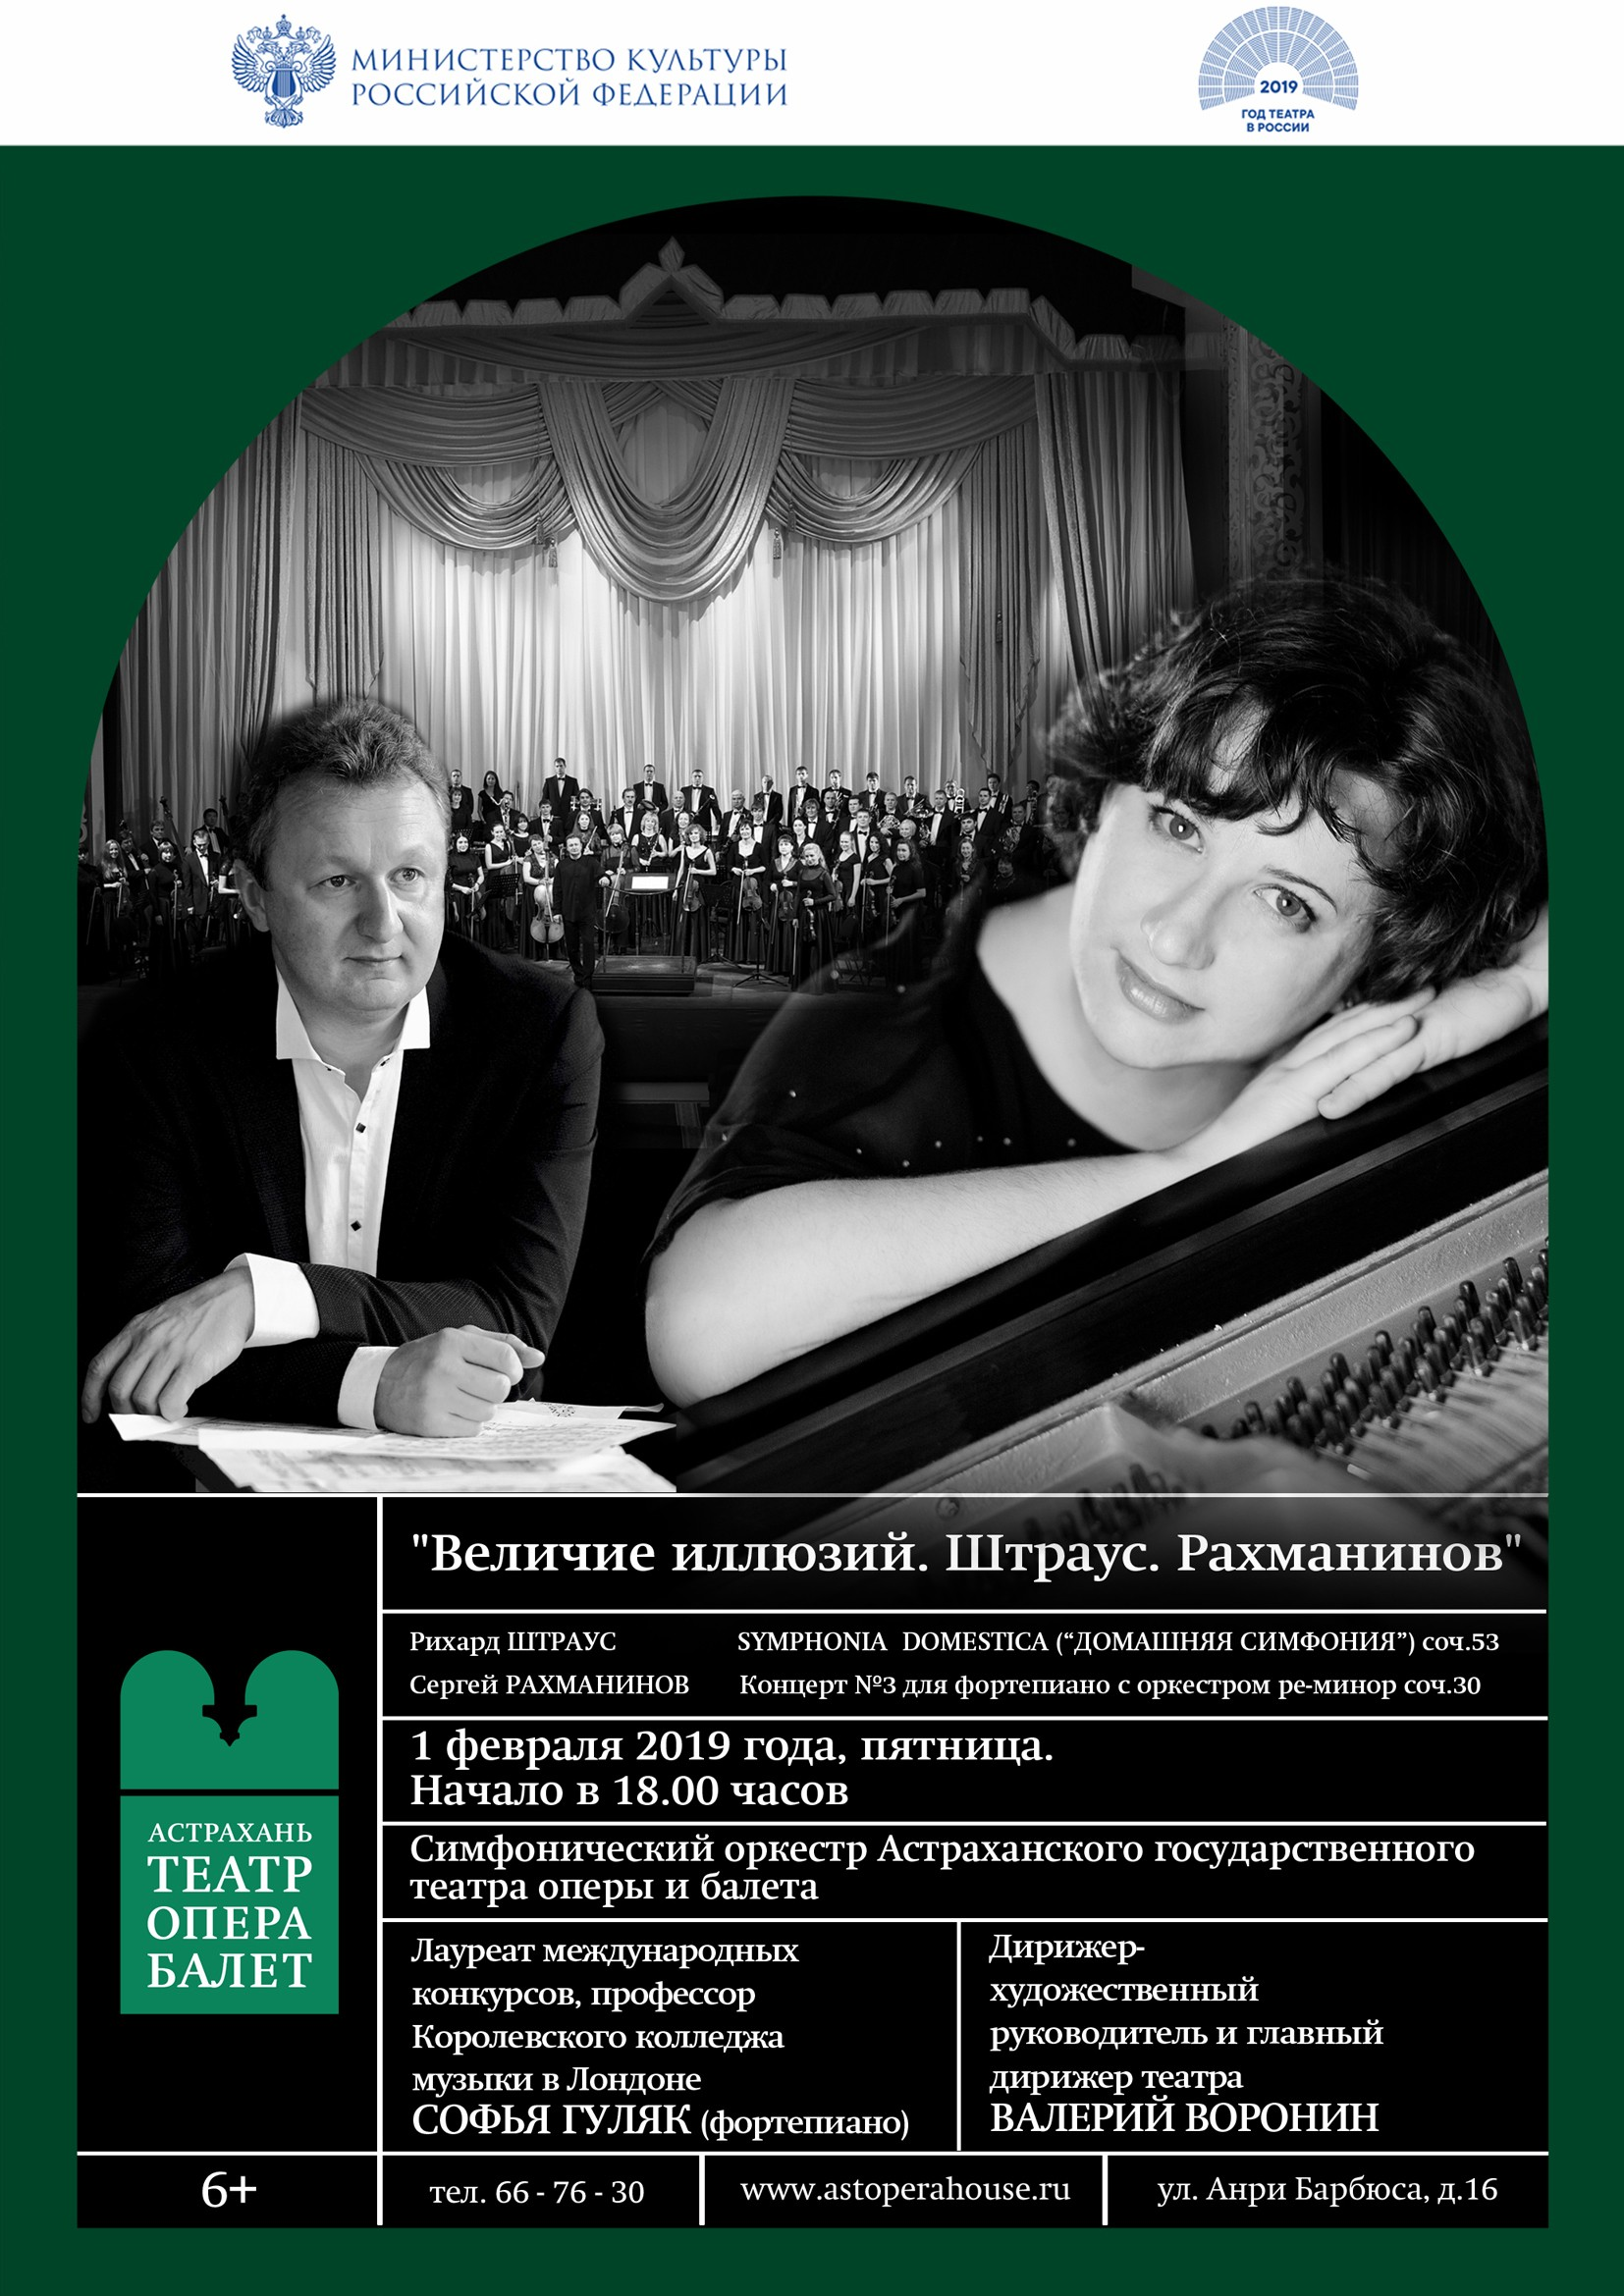 """Home Symphon""Home Symphony"" by Richard Strauss will be performed for the first time in Astrakhan on February, 1"